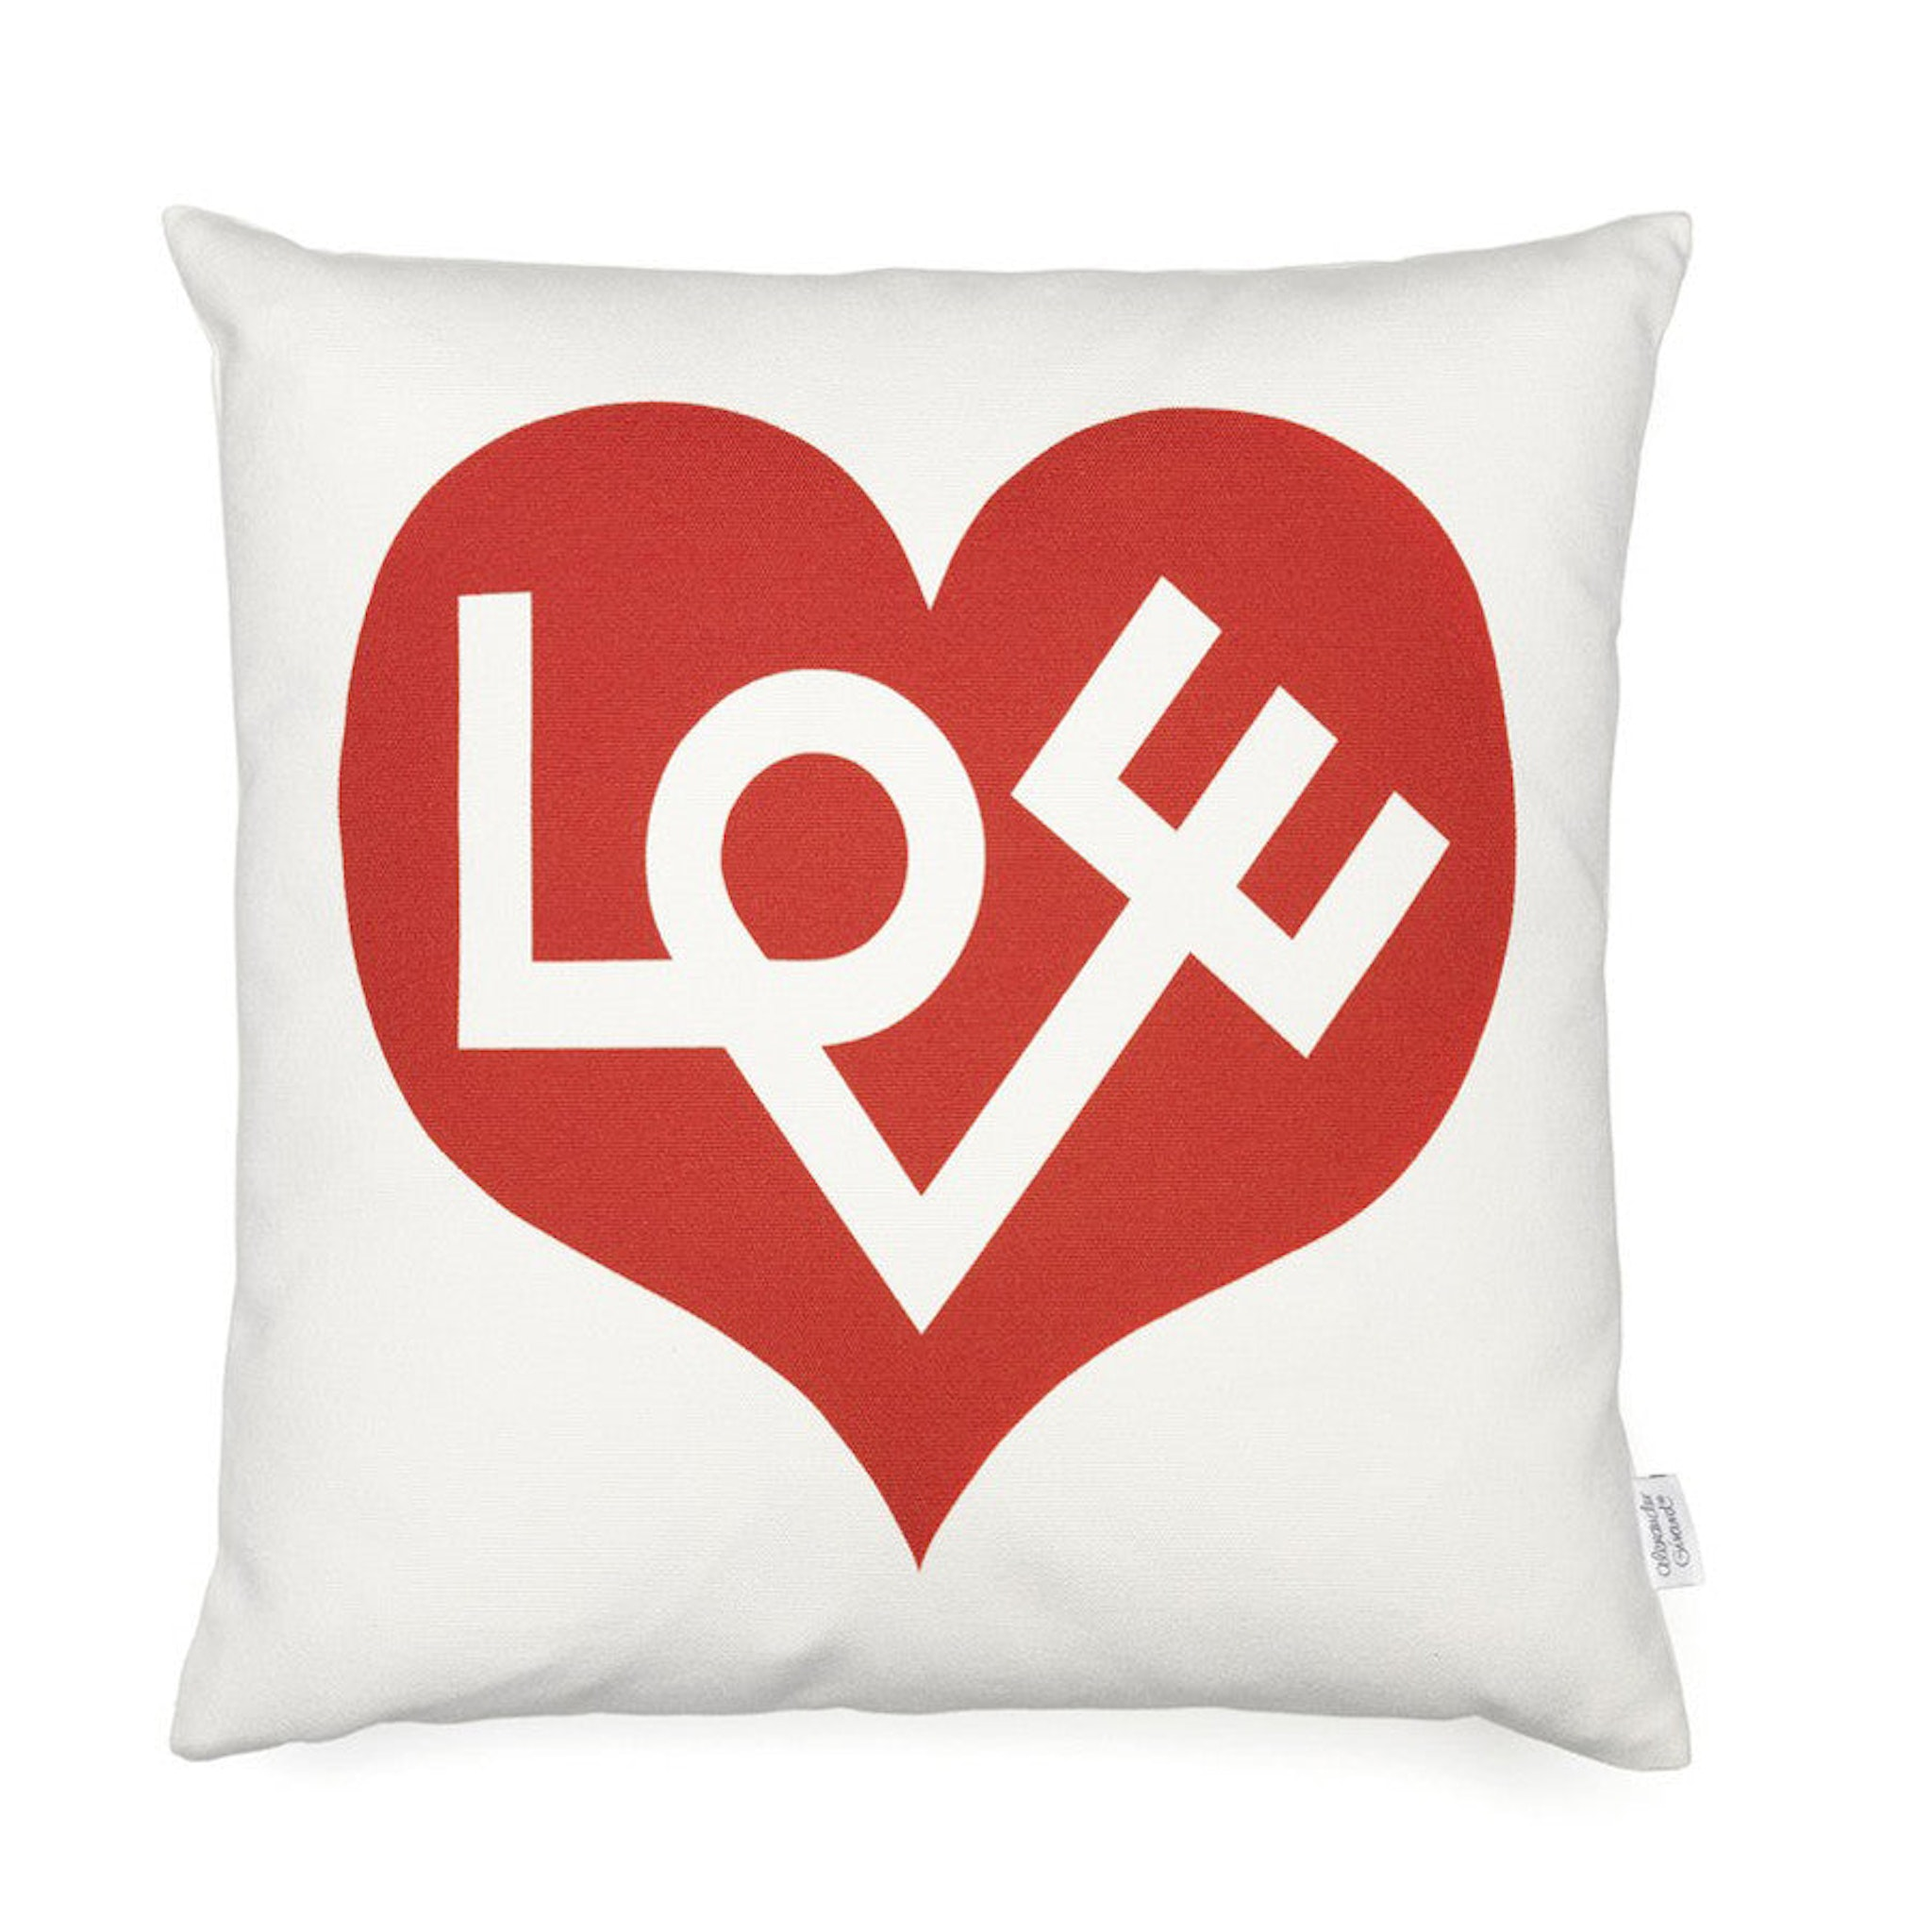 Vitra Graphic Print Pillow - Love by Alexander Girard